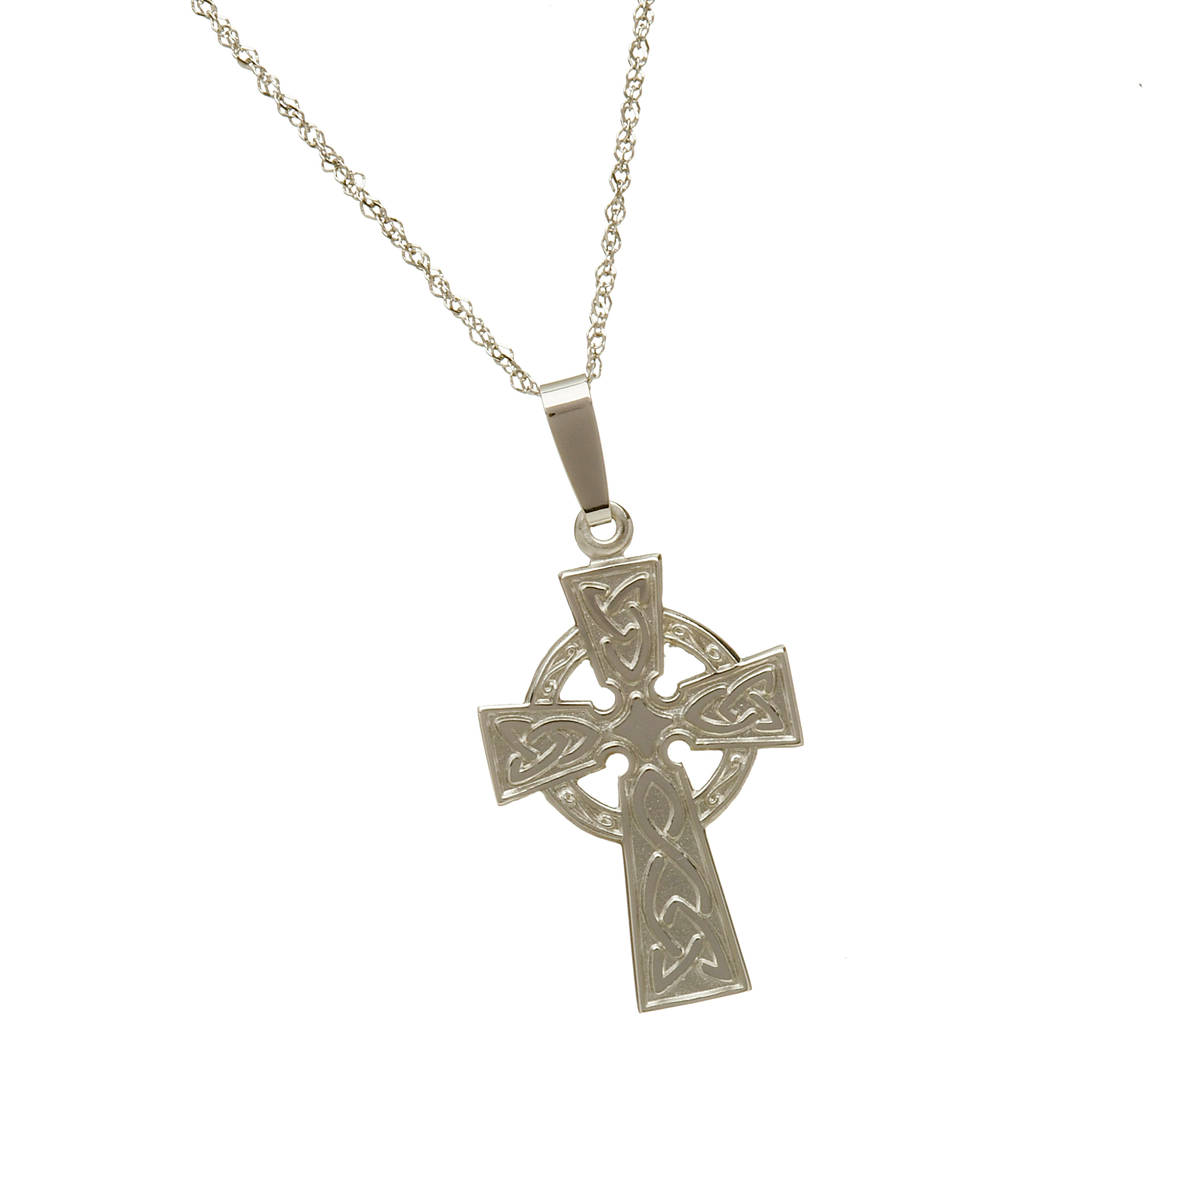 10 carat white gold celtic cross pendant.